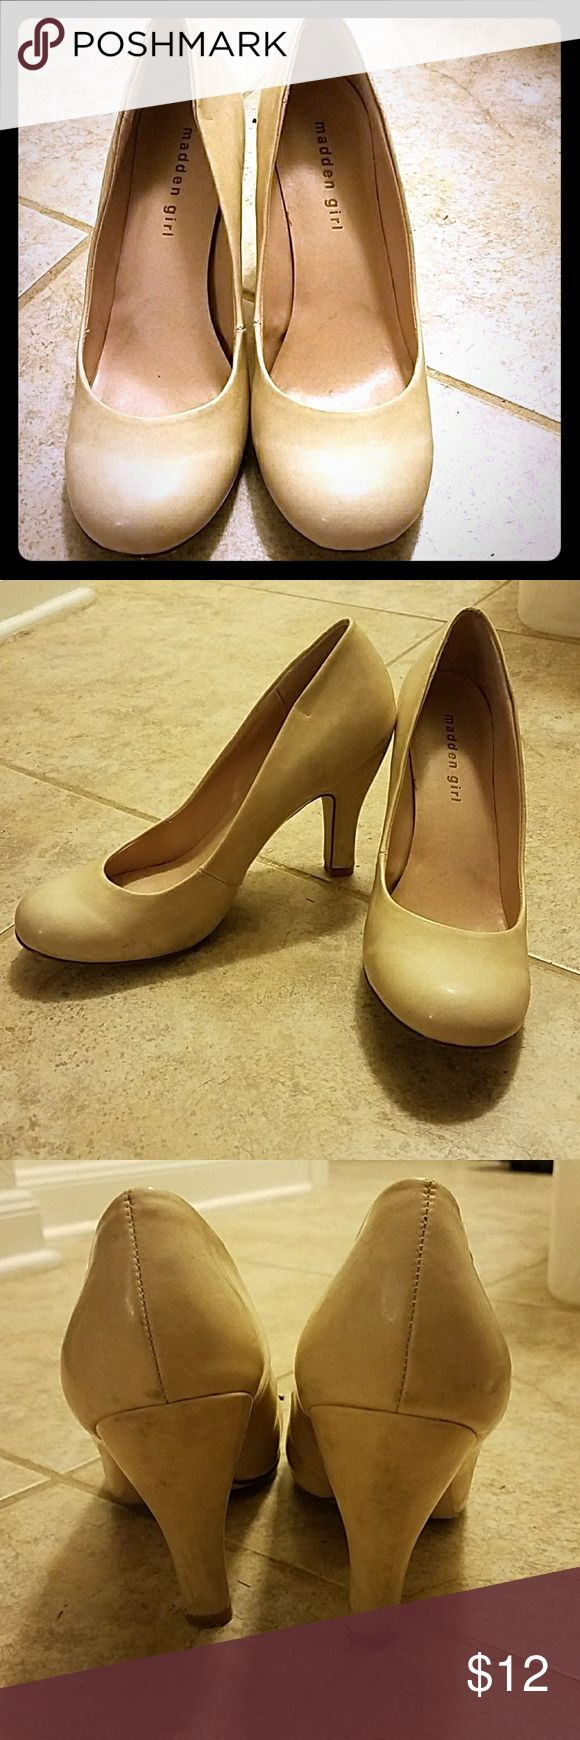 "Pre-loved Madden girl cream  pump Pre-loved Madden girl cream pump. Patent type exterior, height at about 2"". Madden Girl Shoes Heels"